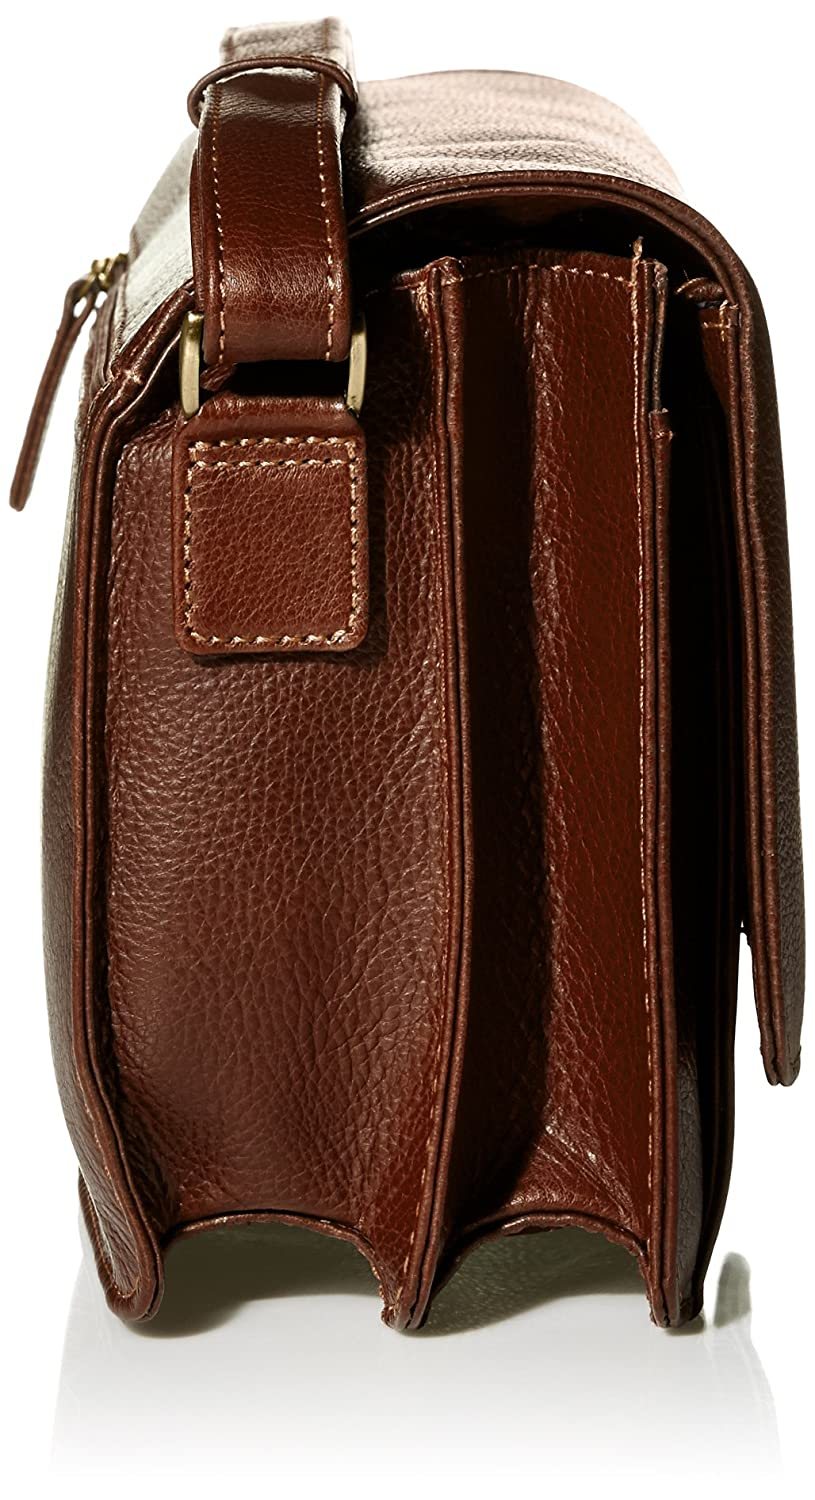 Derek Alexander East//west Half Flap Multi Compartment Whisky